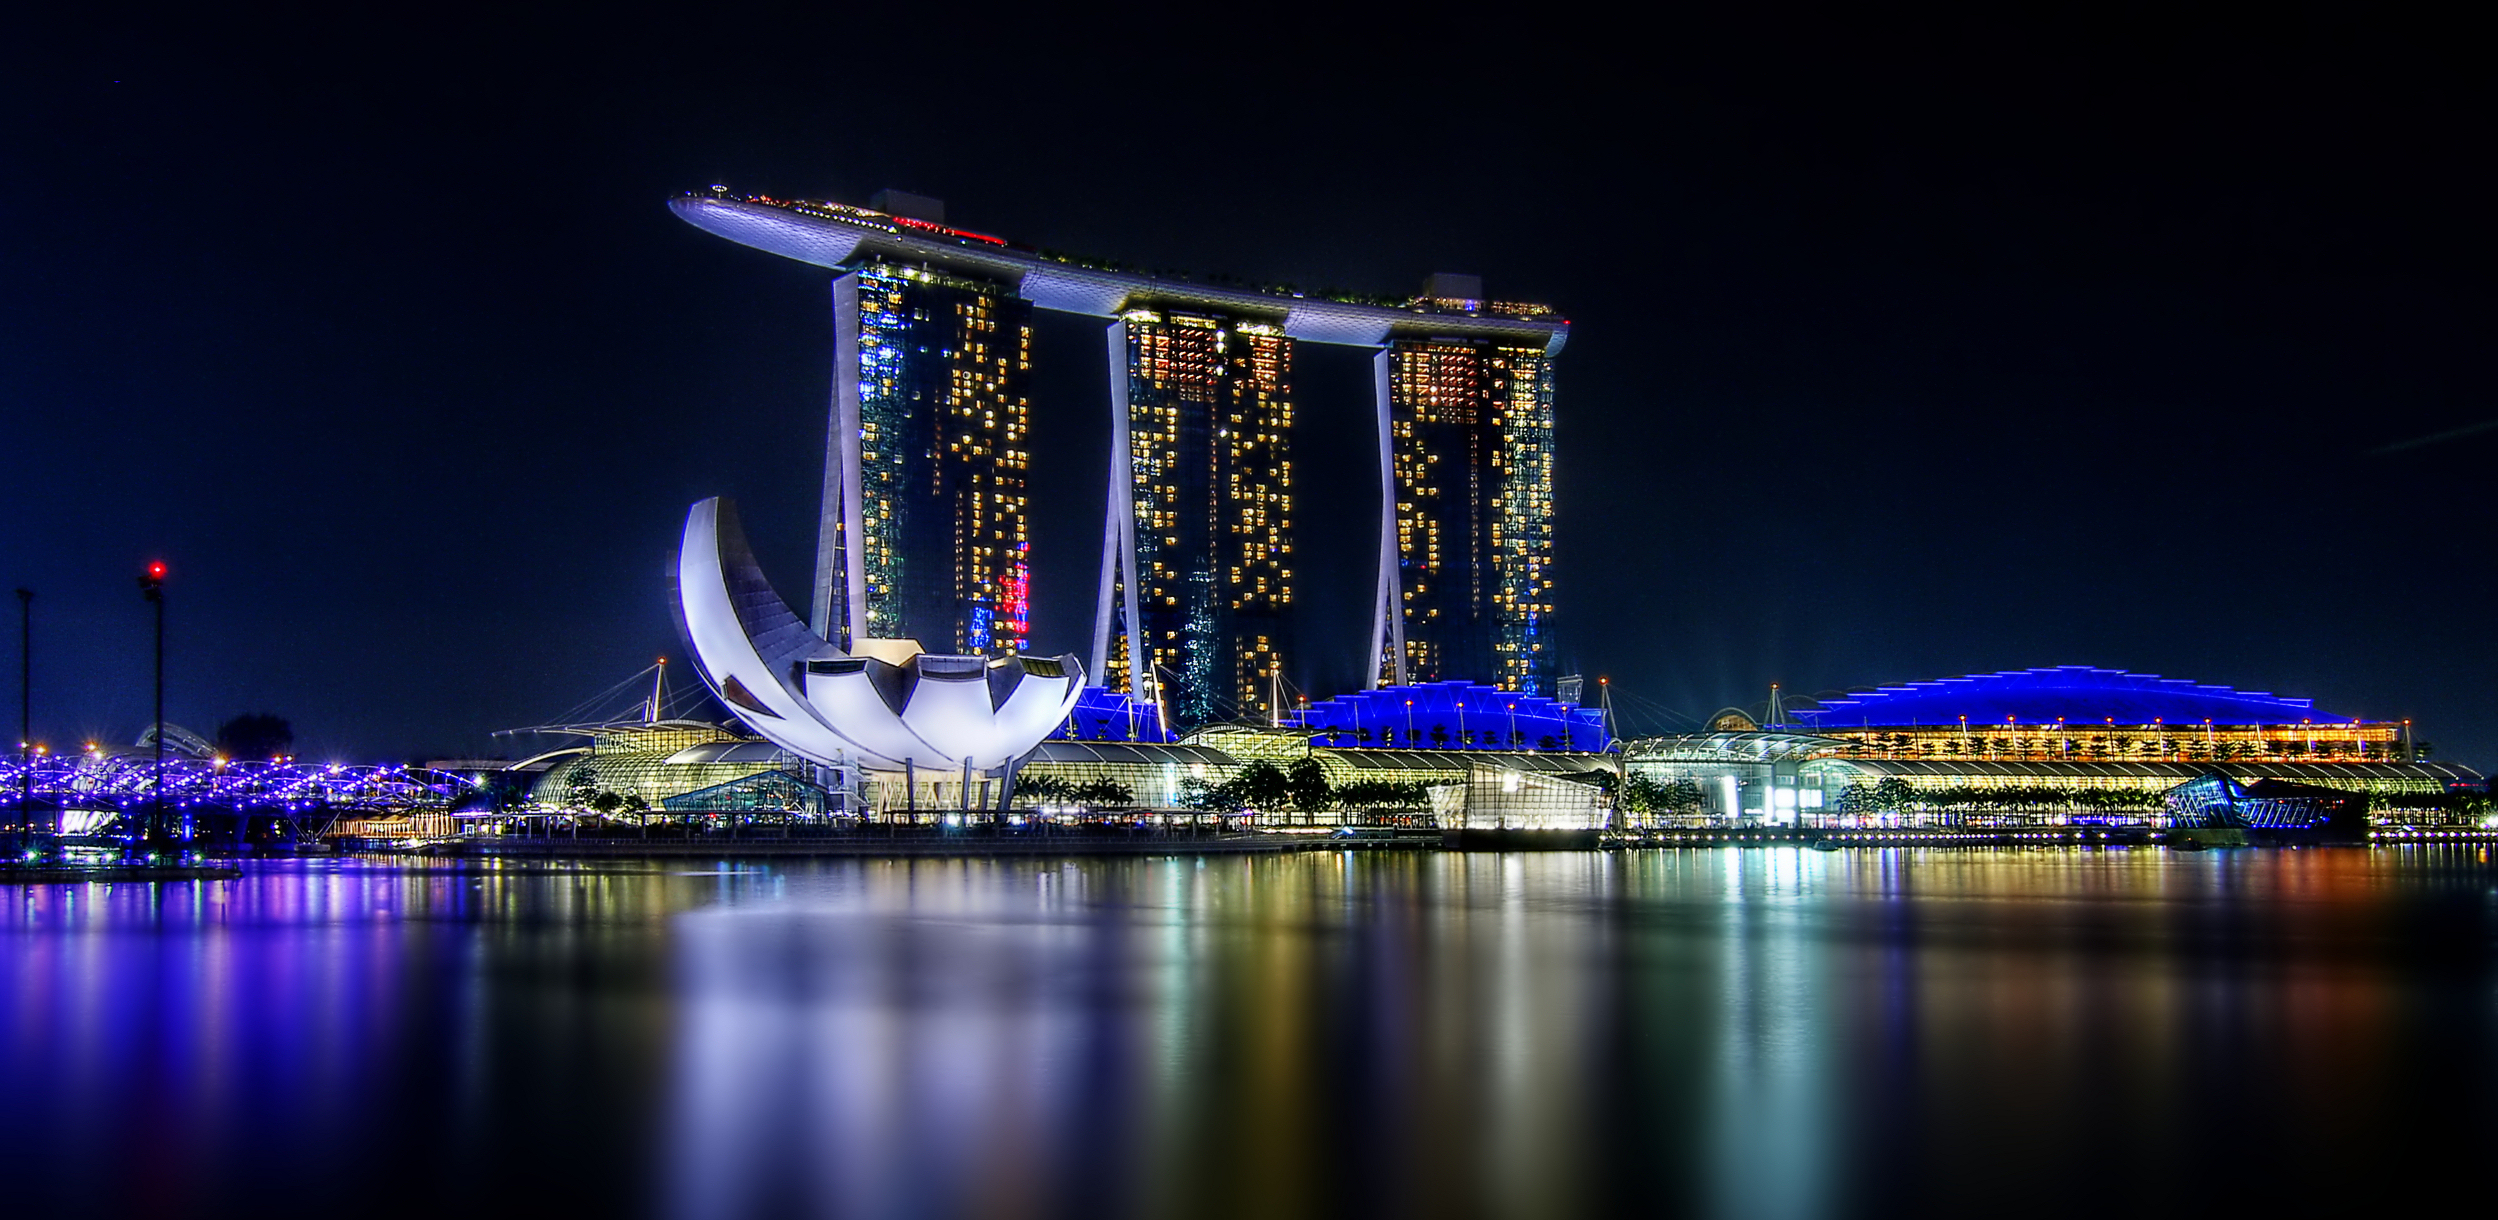 File:Marina Bay Sands, Singapore (8351775641) - Wikimedia Commons